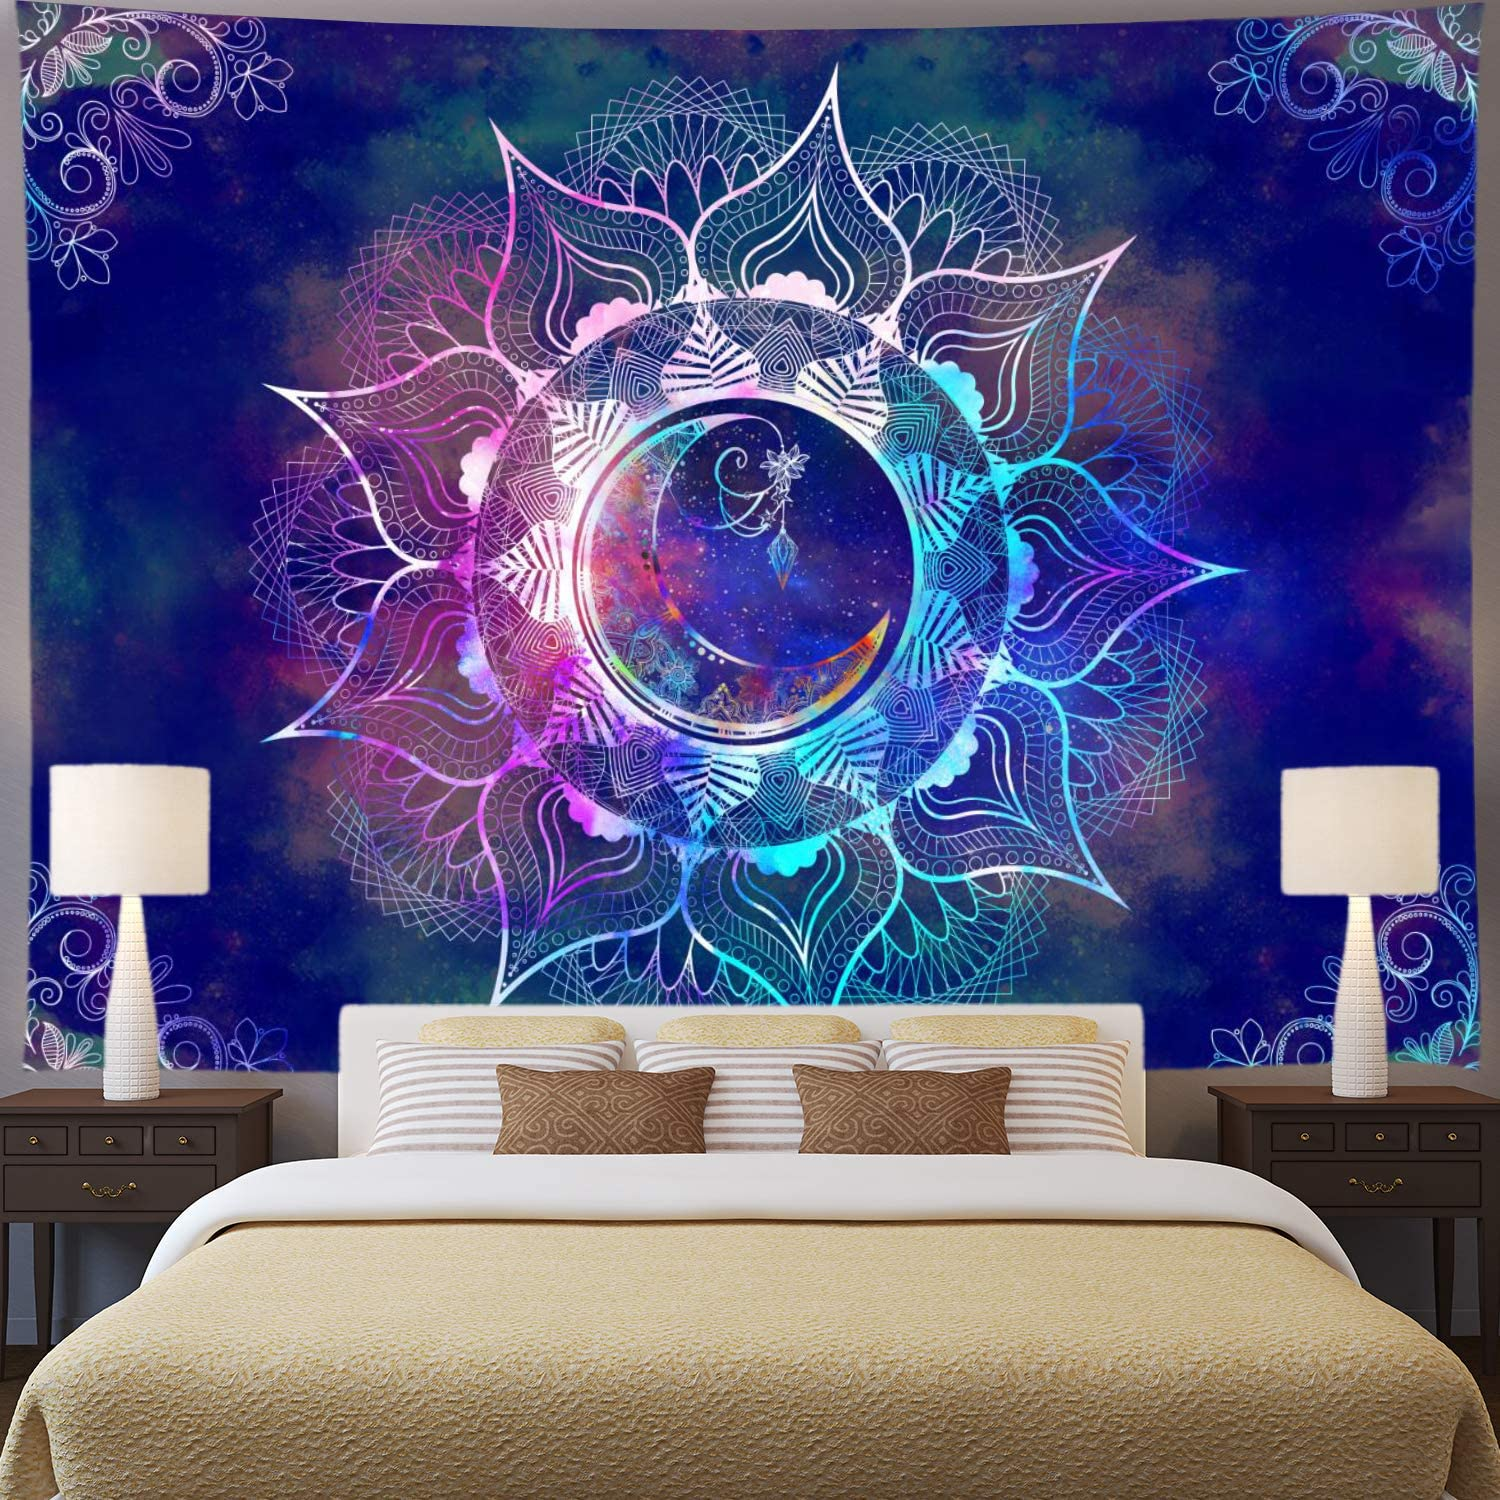 Nature Tapestry Starry Sky Tapestries Hippie Mandala Wall Hanging For Home Decor